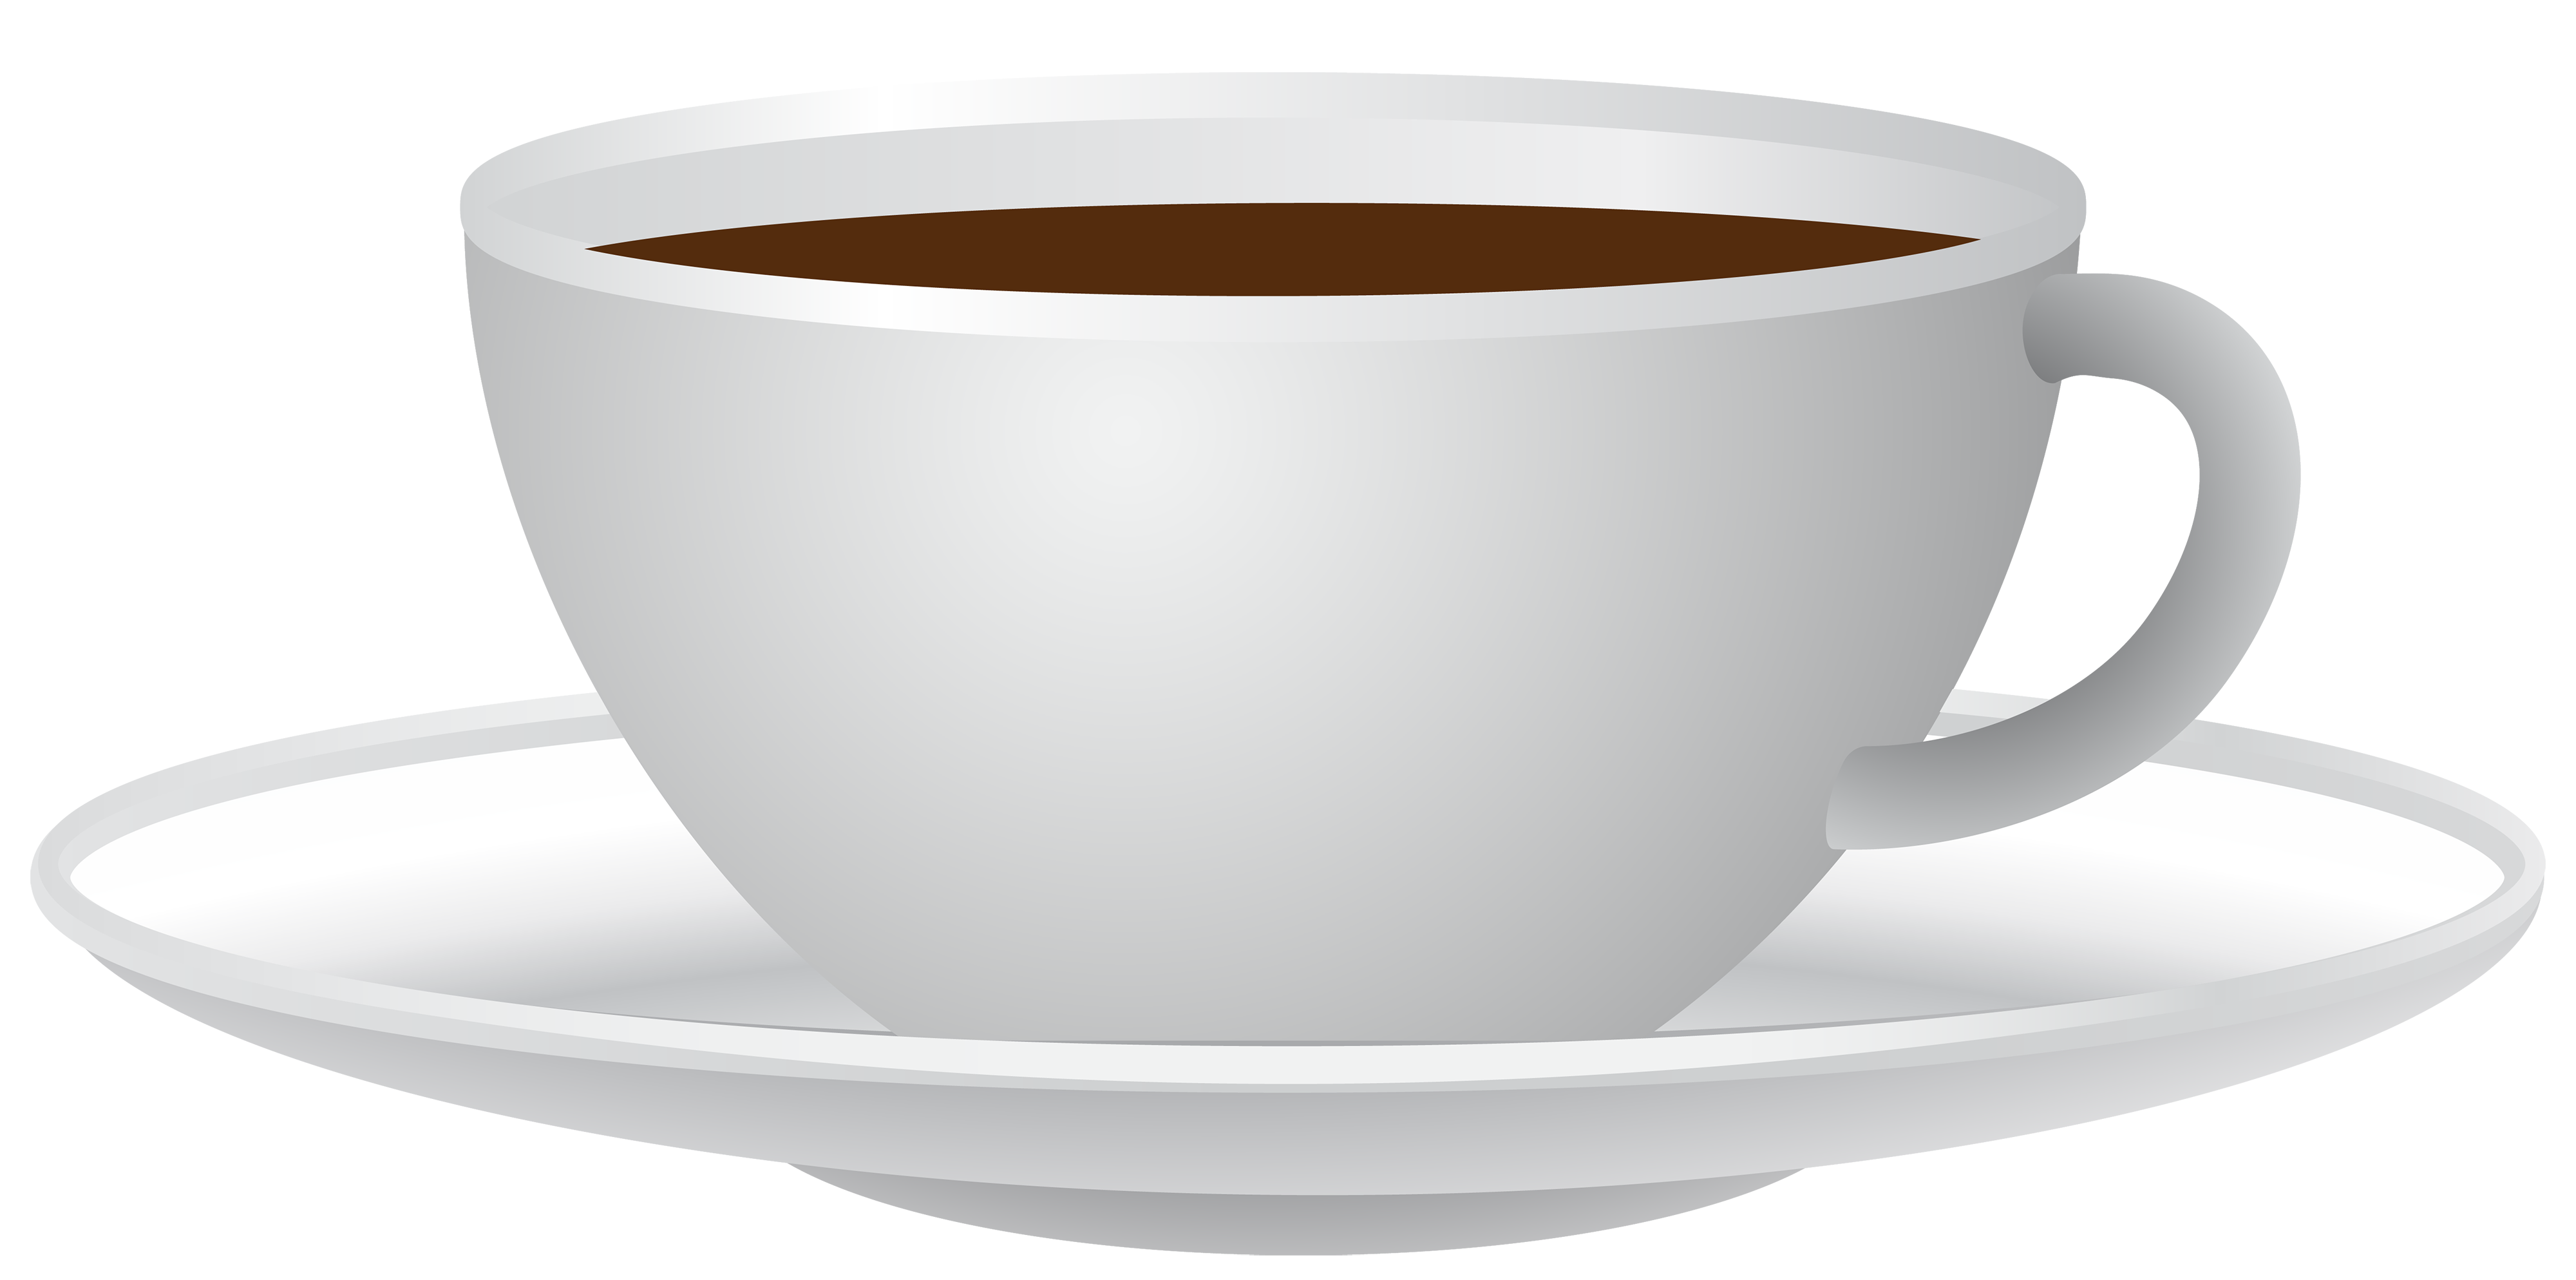 Cup png best web. Clipart coffee file